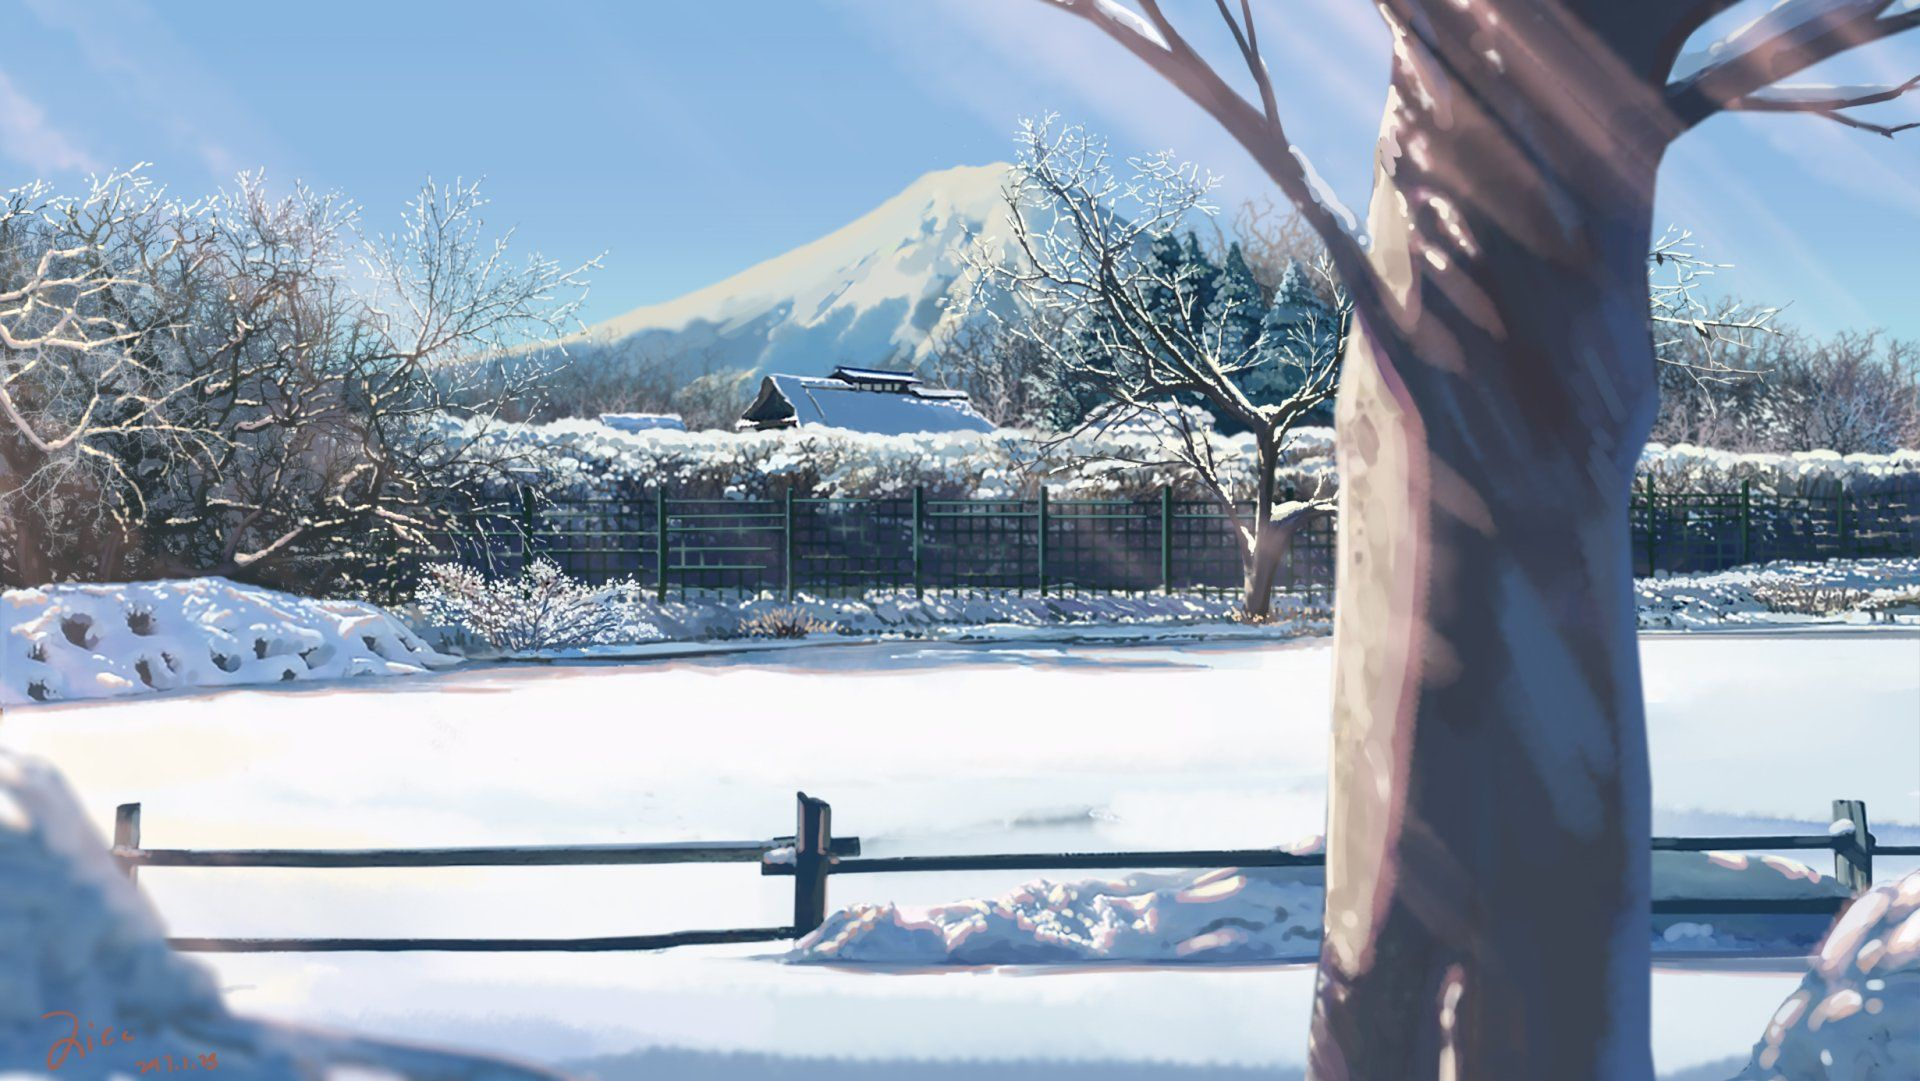 Background Image Click Pic To Full Hd Winteranime Winter Art Anime Background Anime Scenery Anime Scenery Wallpaper Winter Scenery